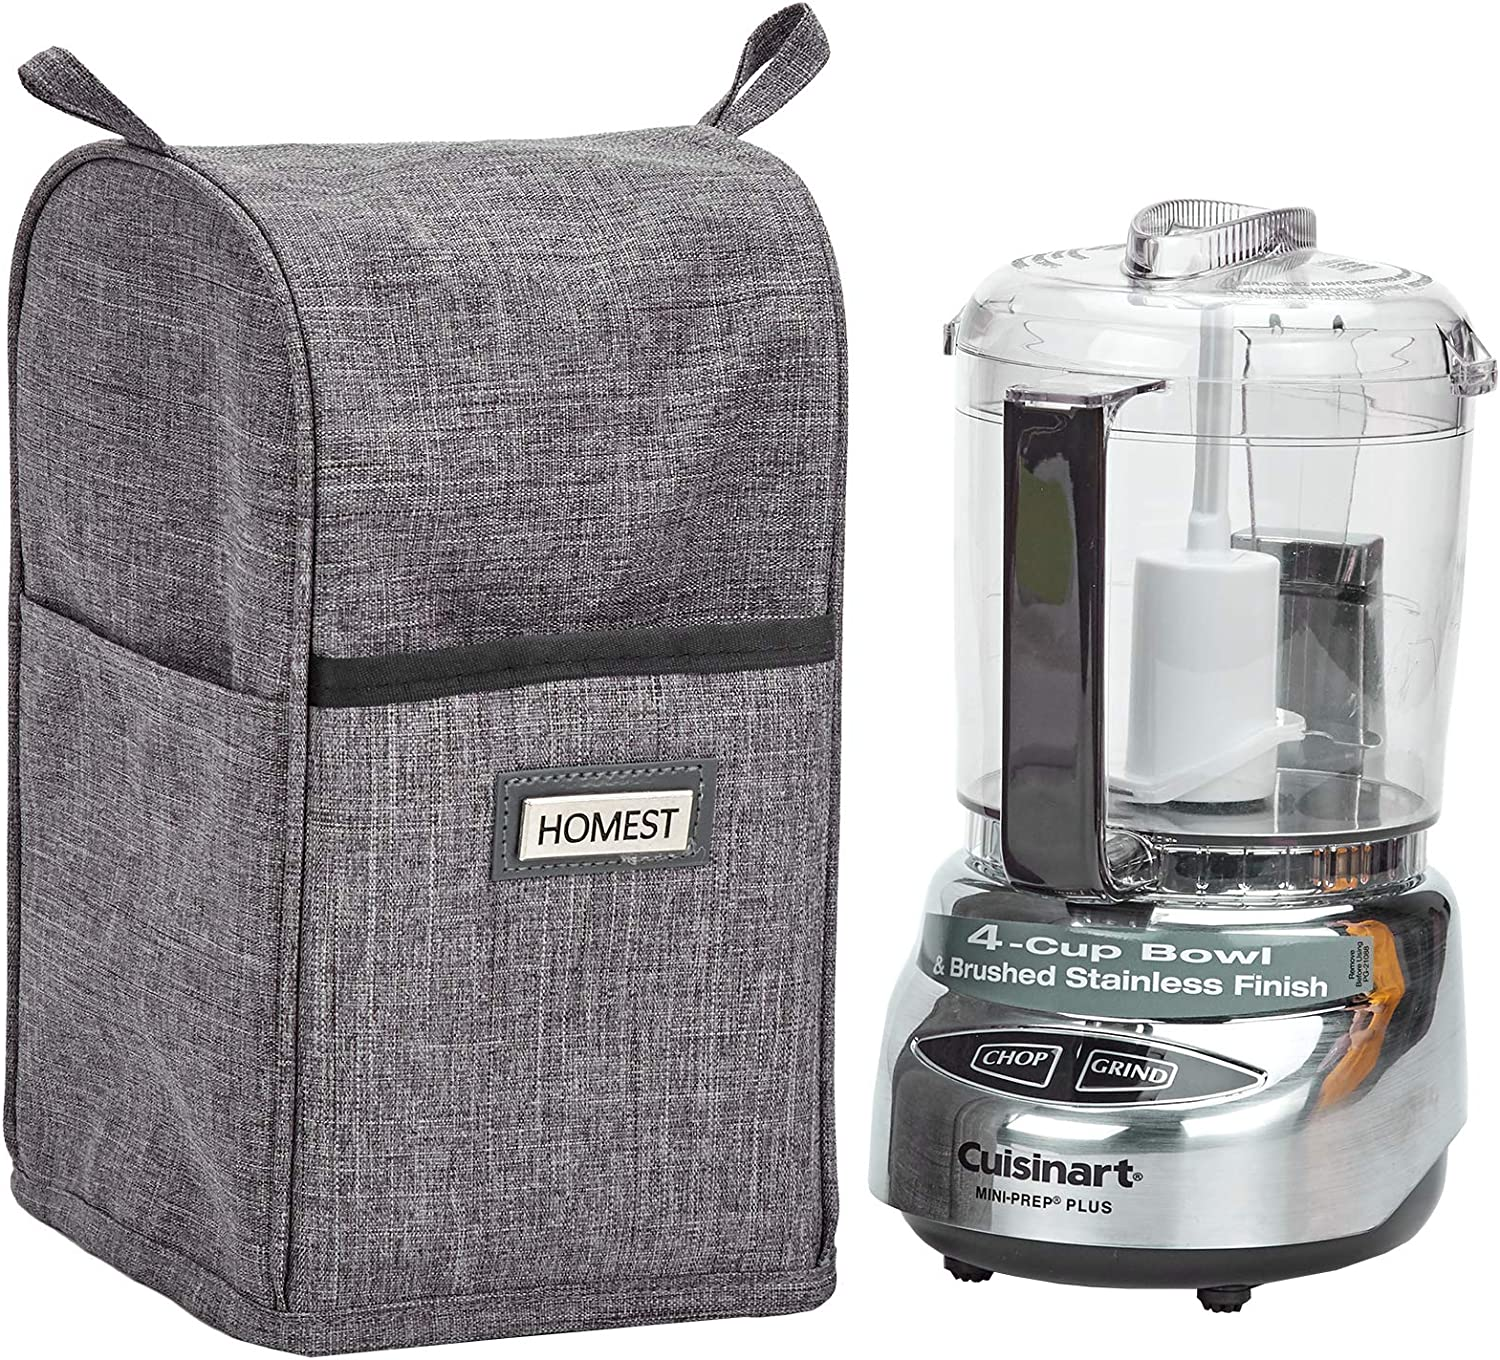 HOMEST Food Processor Dust Cover with Accessory Pockets Compatible with Cuisinart Mini 3-4 Cup, Grey (Dust Cover Only, NOT INCLUDE MACHINE)